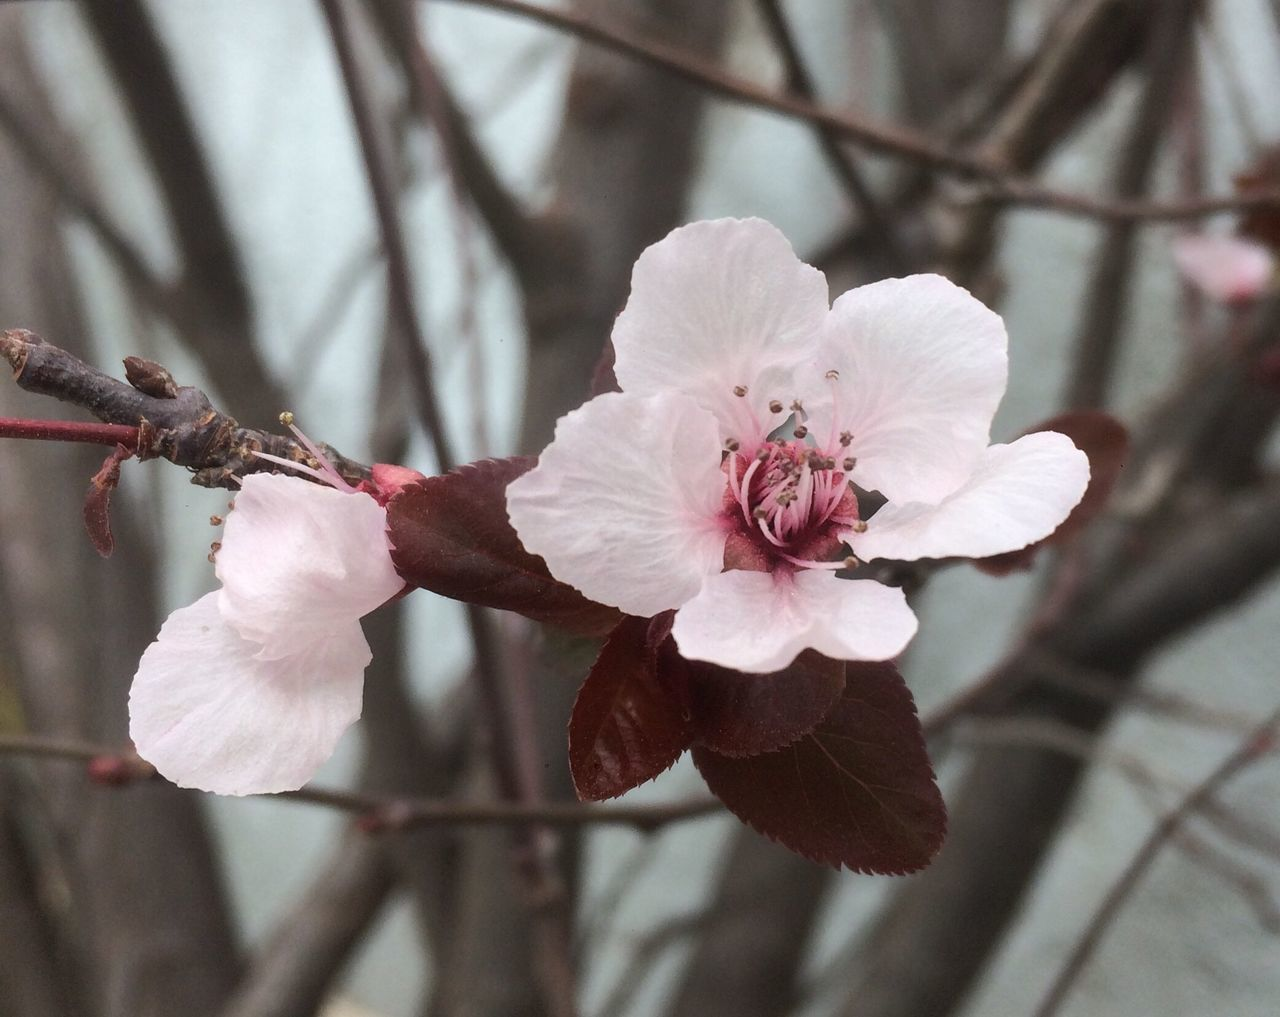 flower, petal, fragility, beauty in nature, blossom, growth, flower head, nature, branch, white color, springtime, pink color, twig, botany, freshness, focus on foreground, close-up, tree, pollen, day, stamen, no people, plum blossom, blooming, outdoors, wild rose